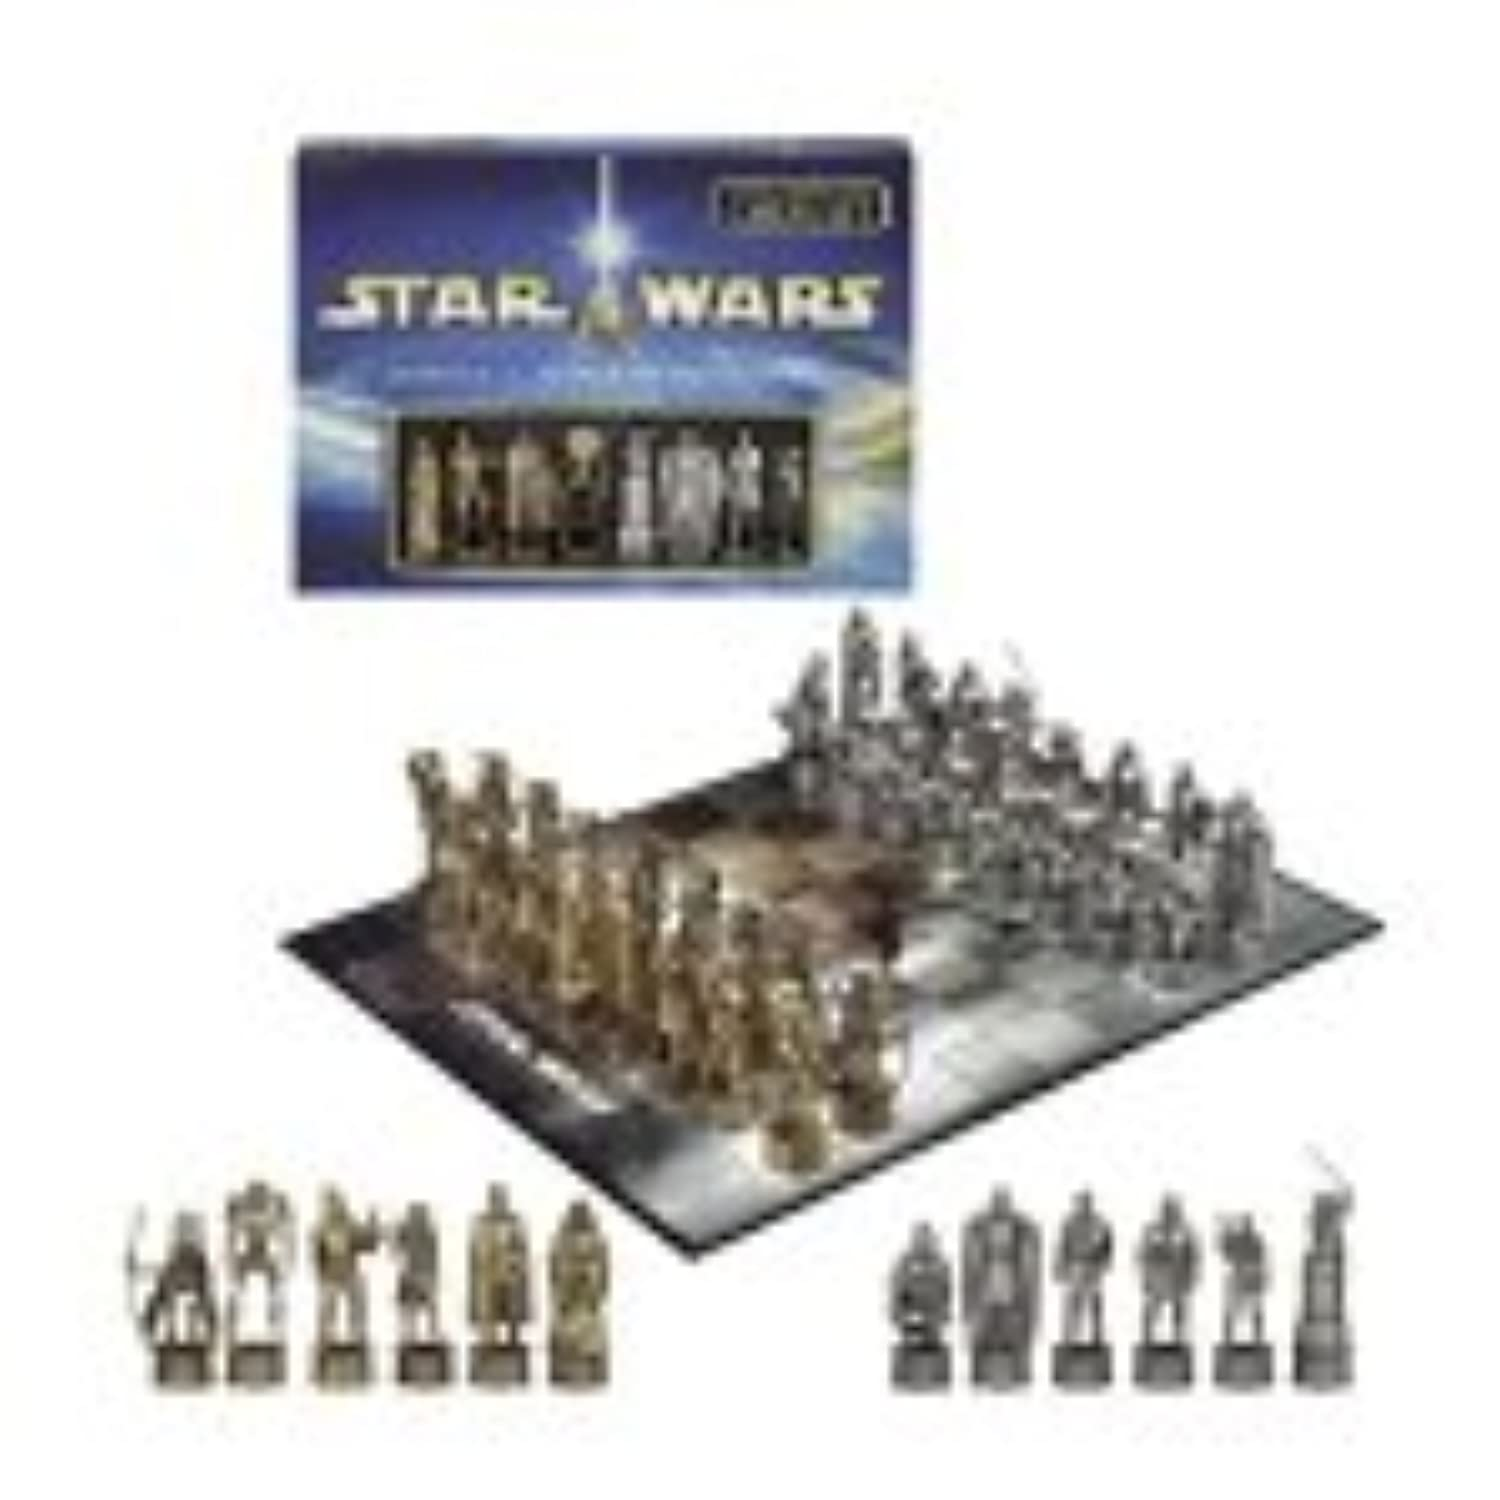 Star Wars Episode II: Attack of the Clones Chess Set